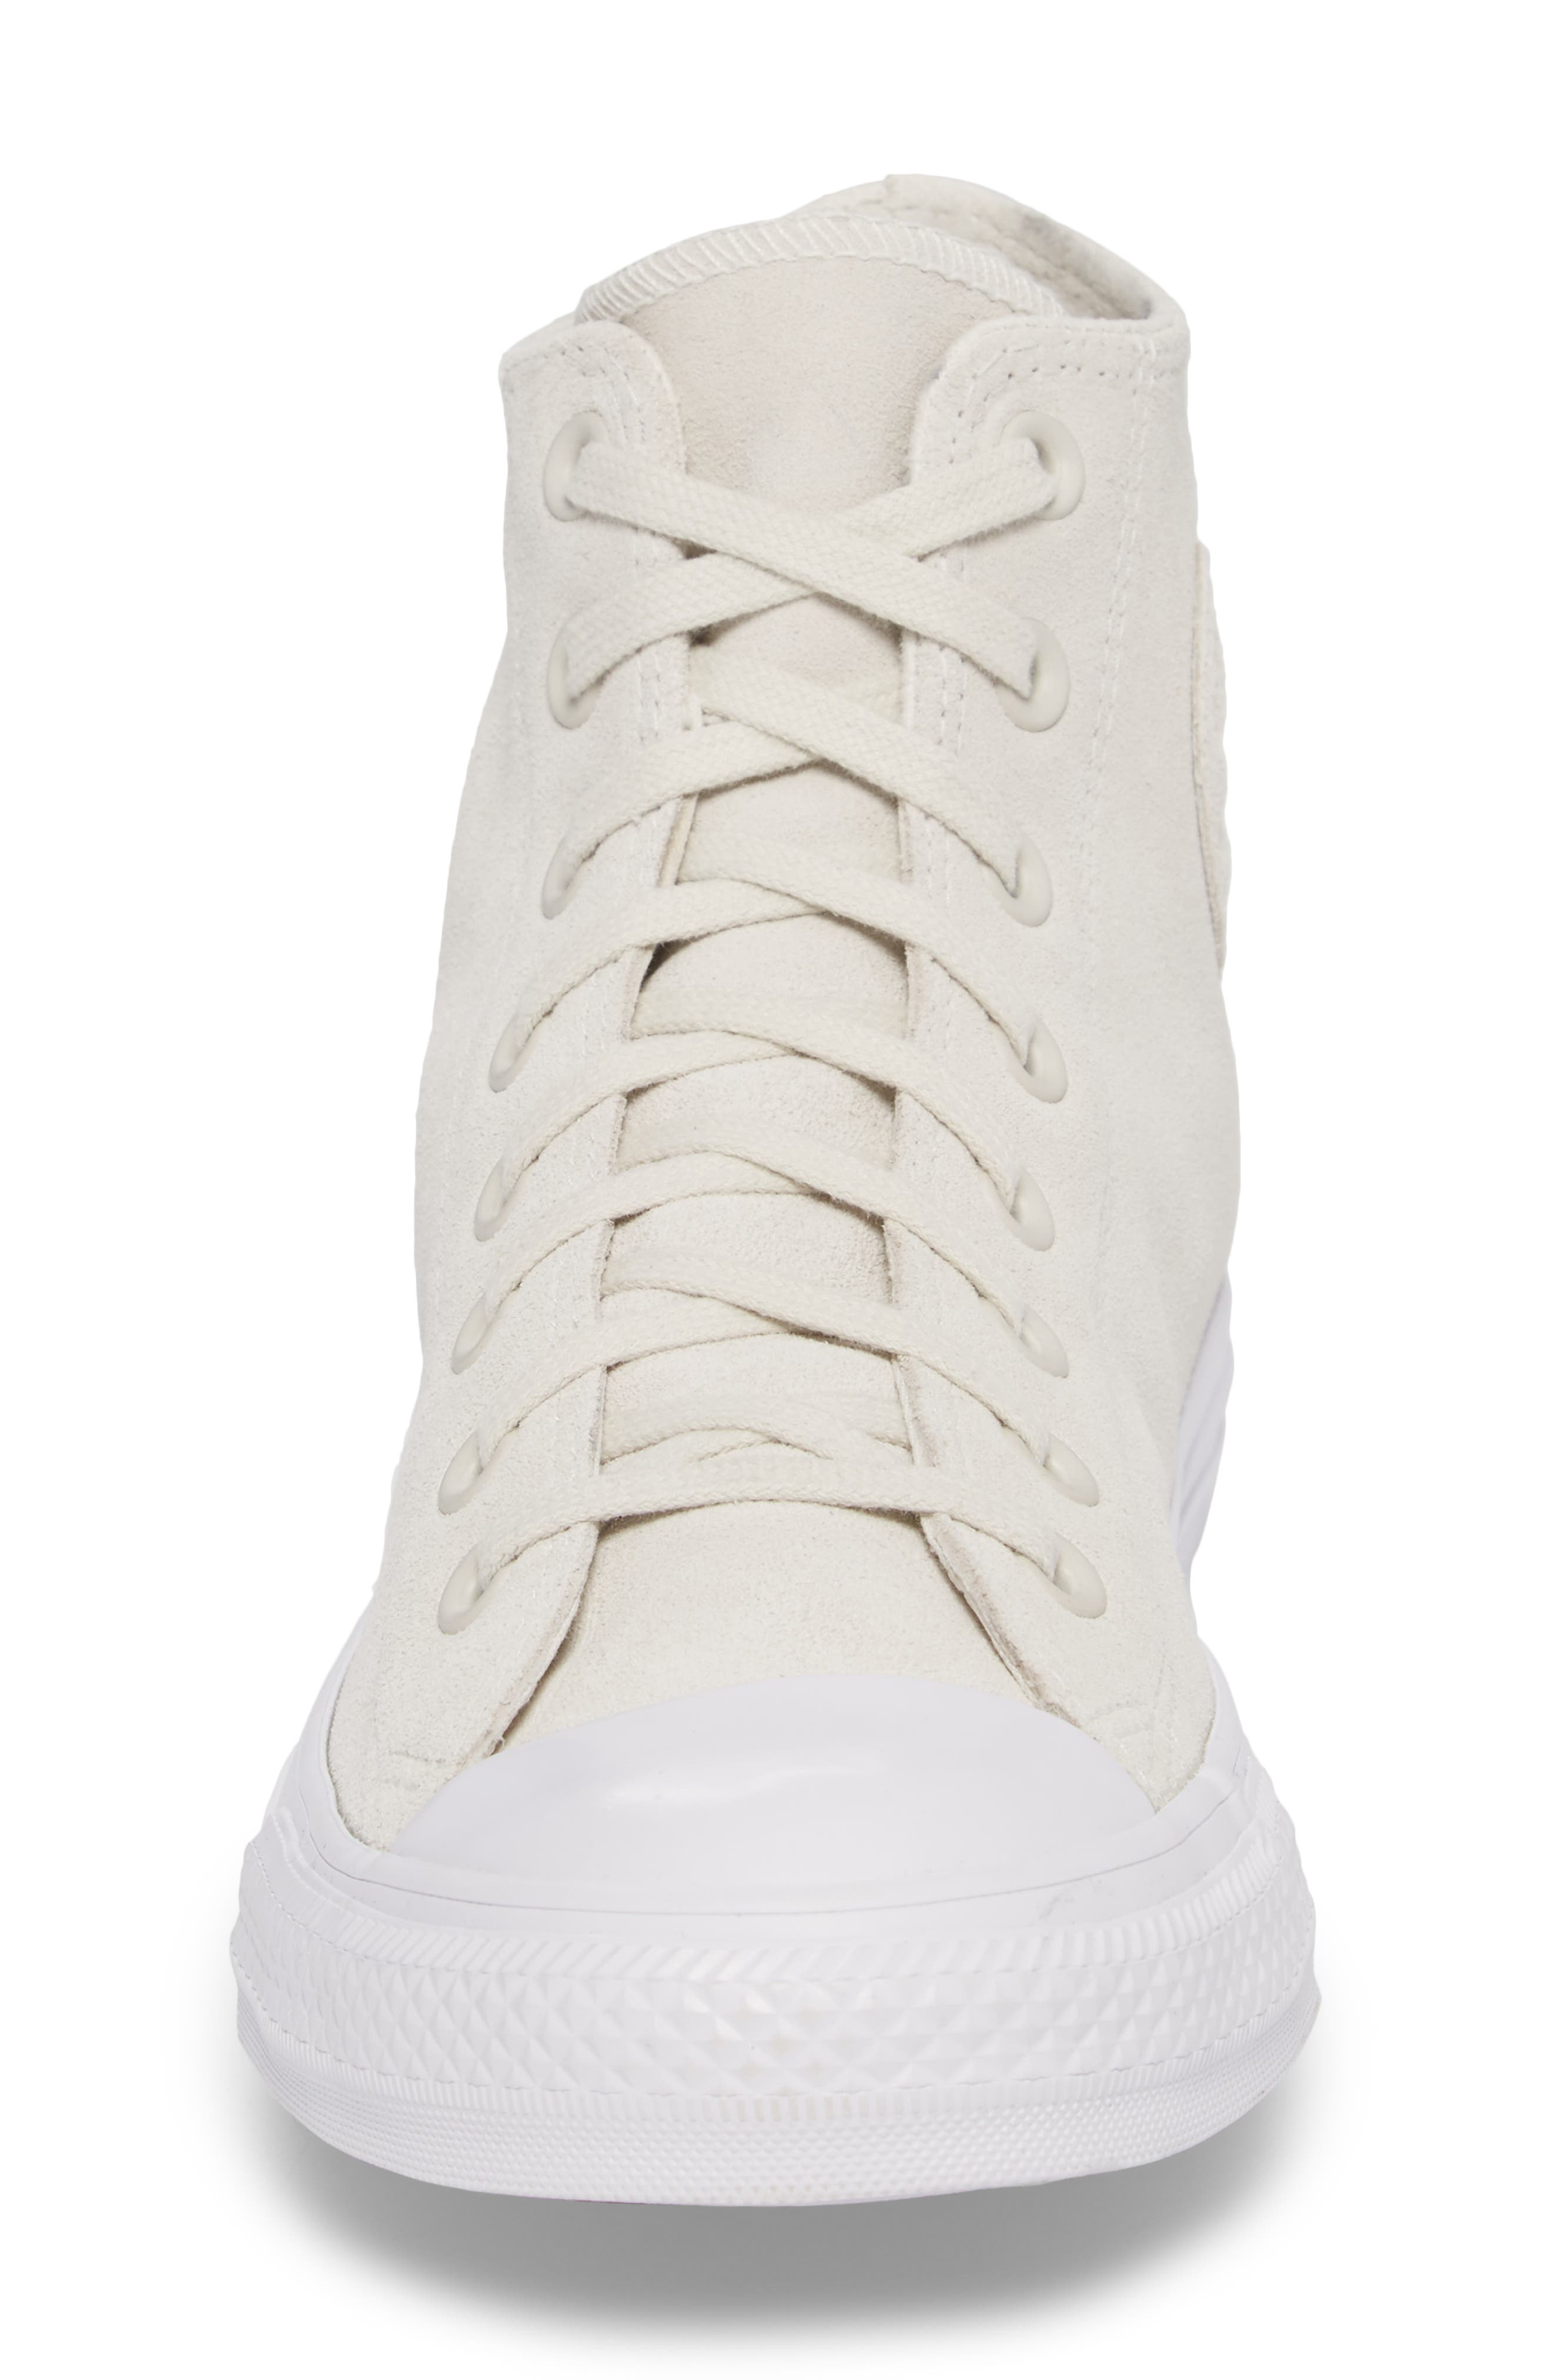 Chuck Taylor<sup>®</sup> All Star<sup>®</sup> Plush Hi Sneaker,                             Alternate thumbnail 4, color,                             Buff Suede